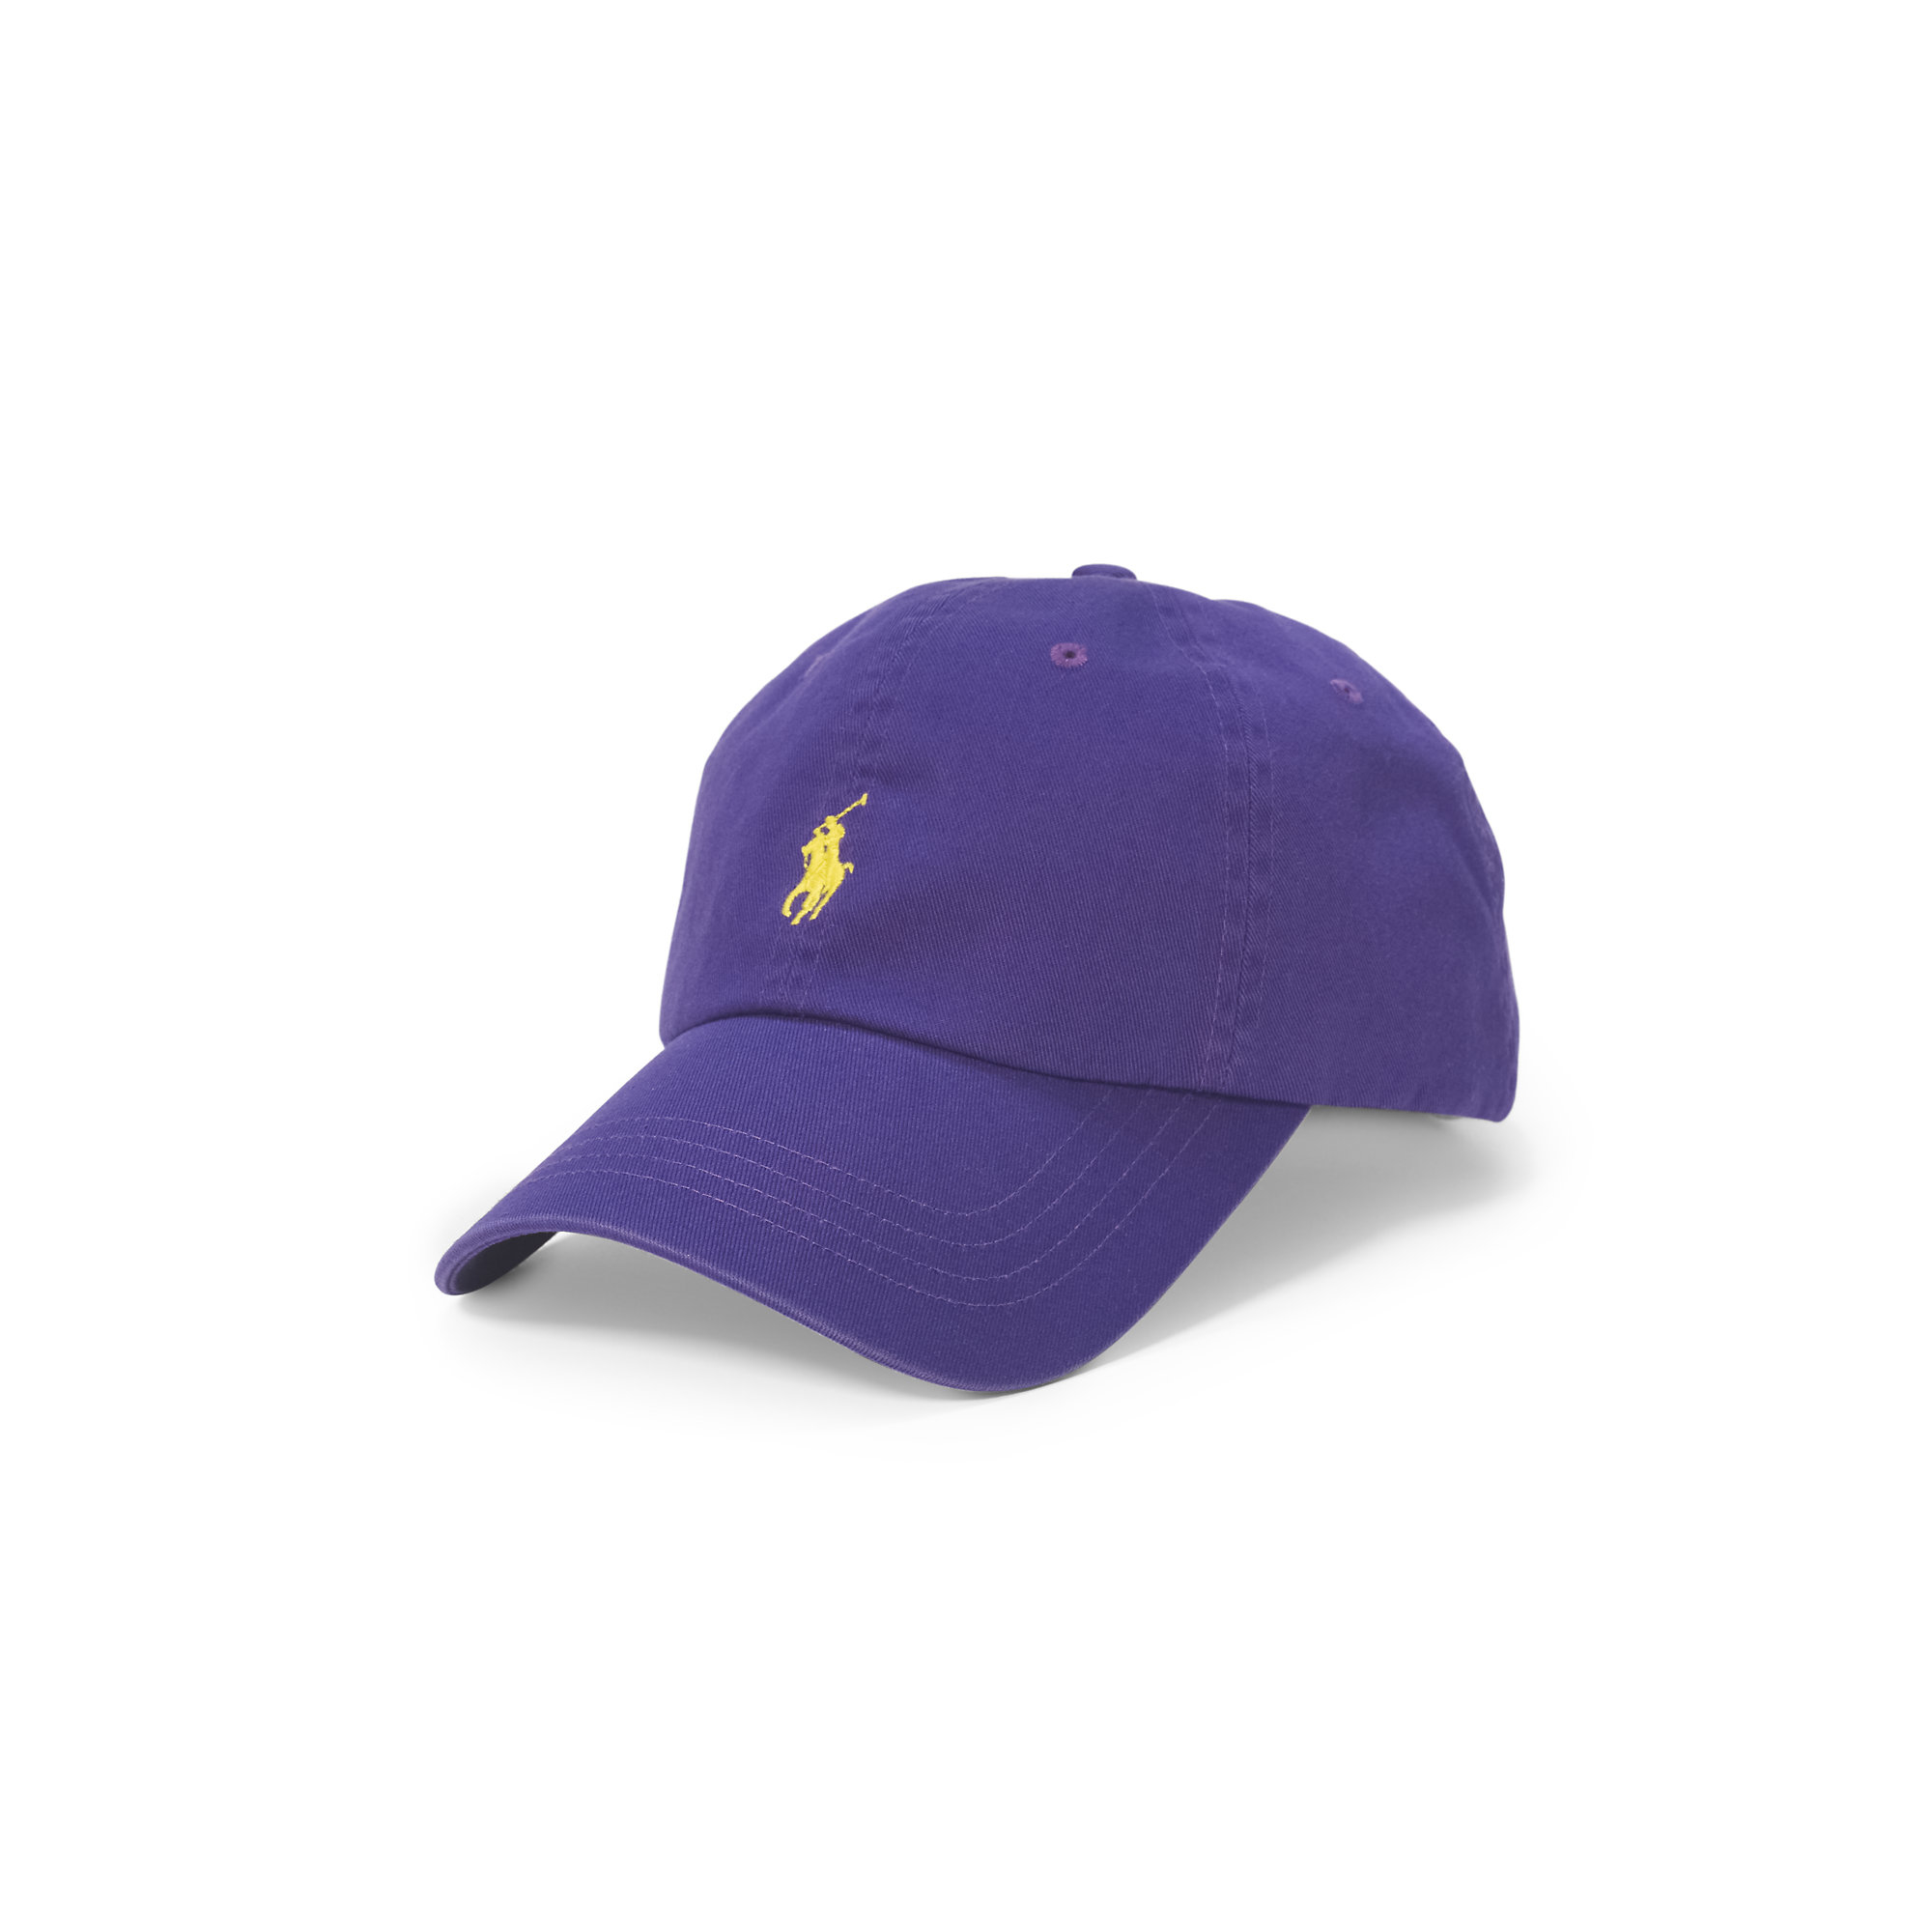 Lyst - Polo Ralph Lauren Cotton Chino Baseball Cap in Purple for Men eb4051afcde